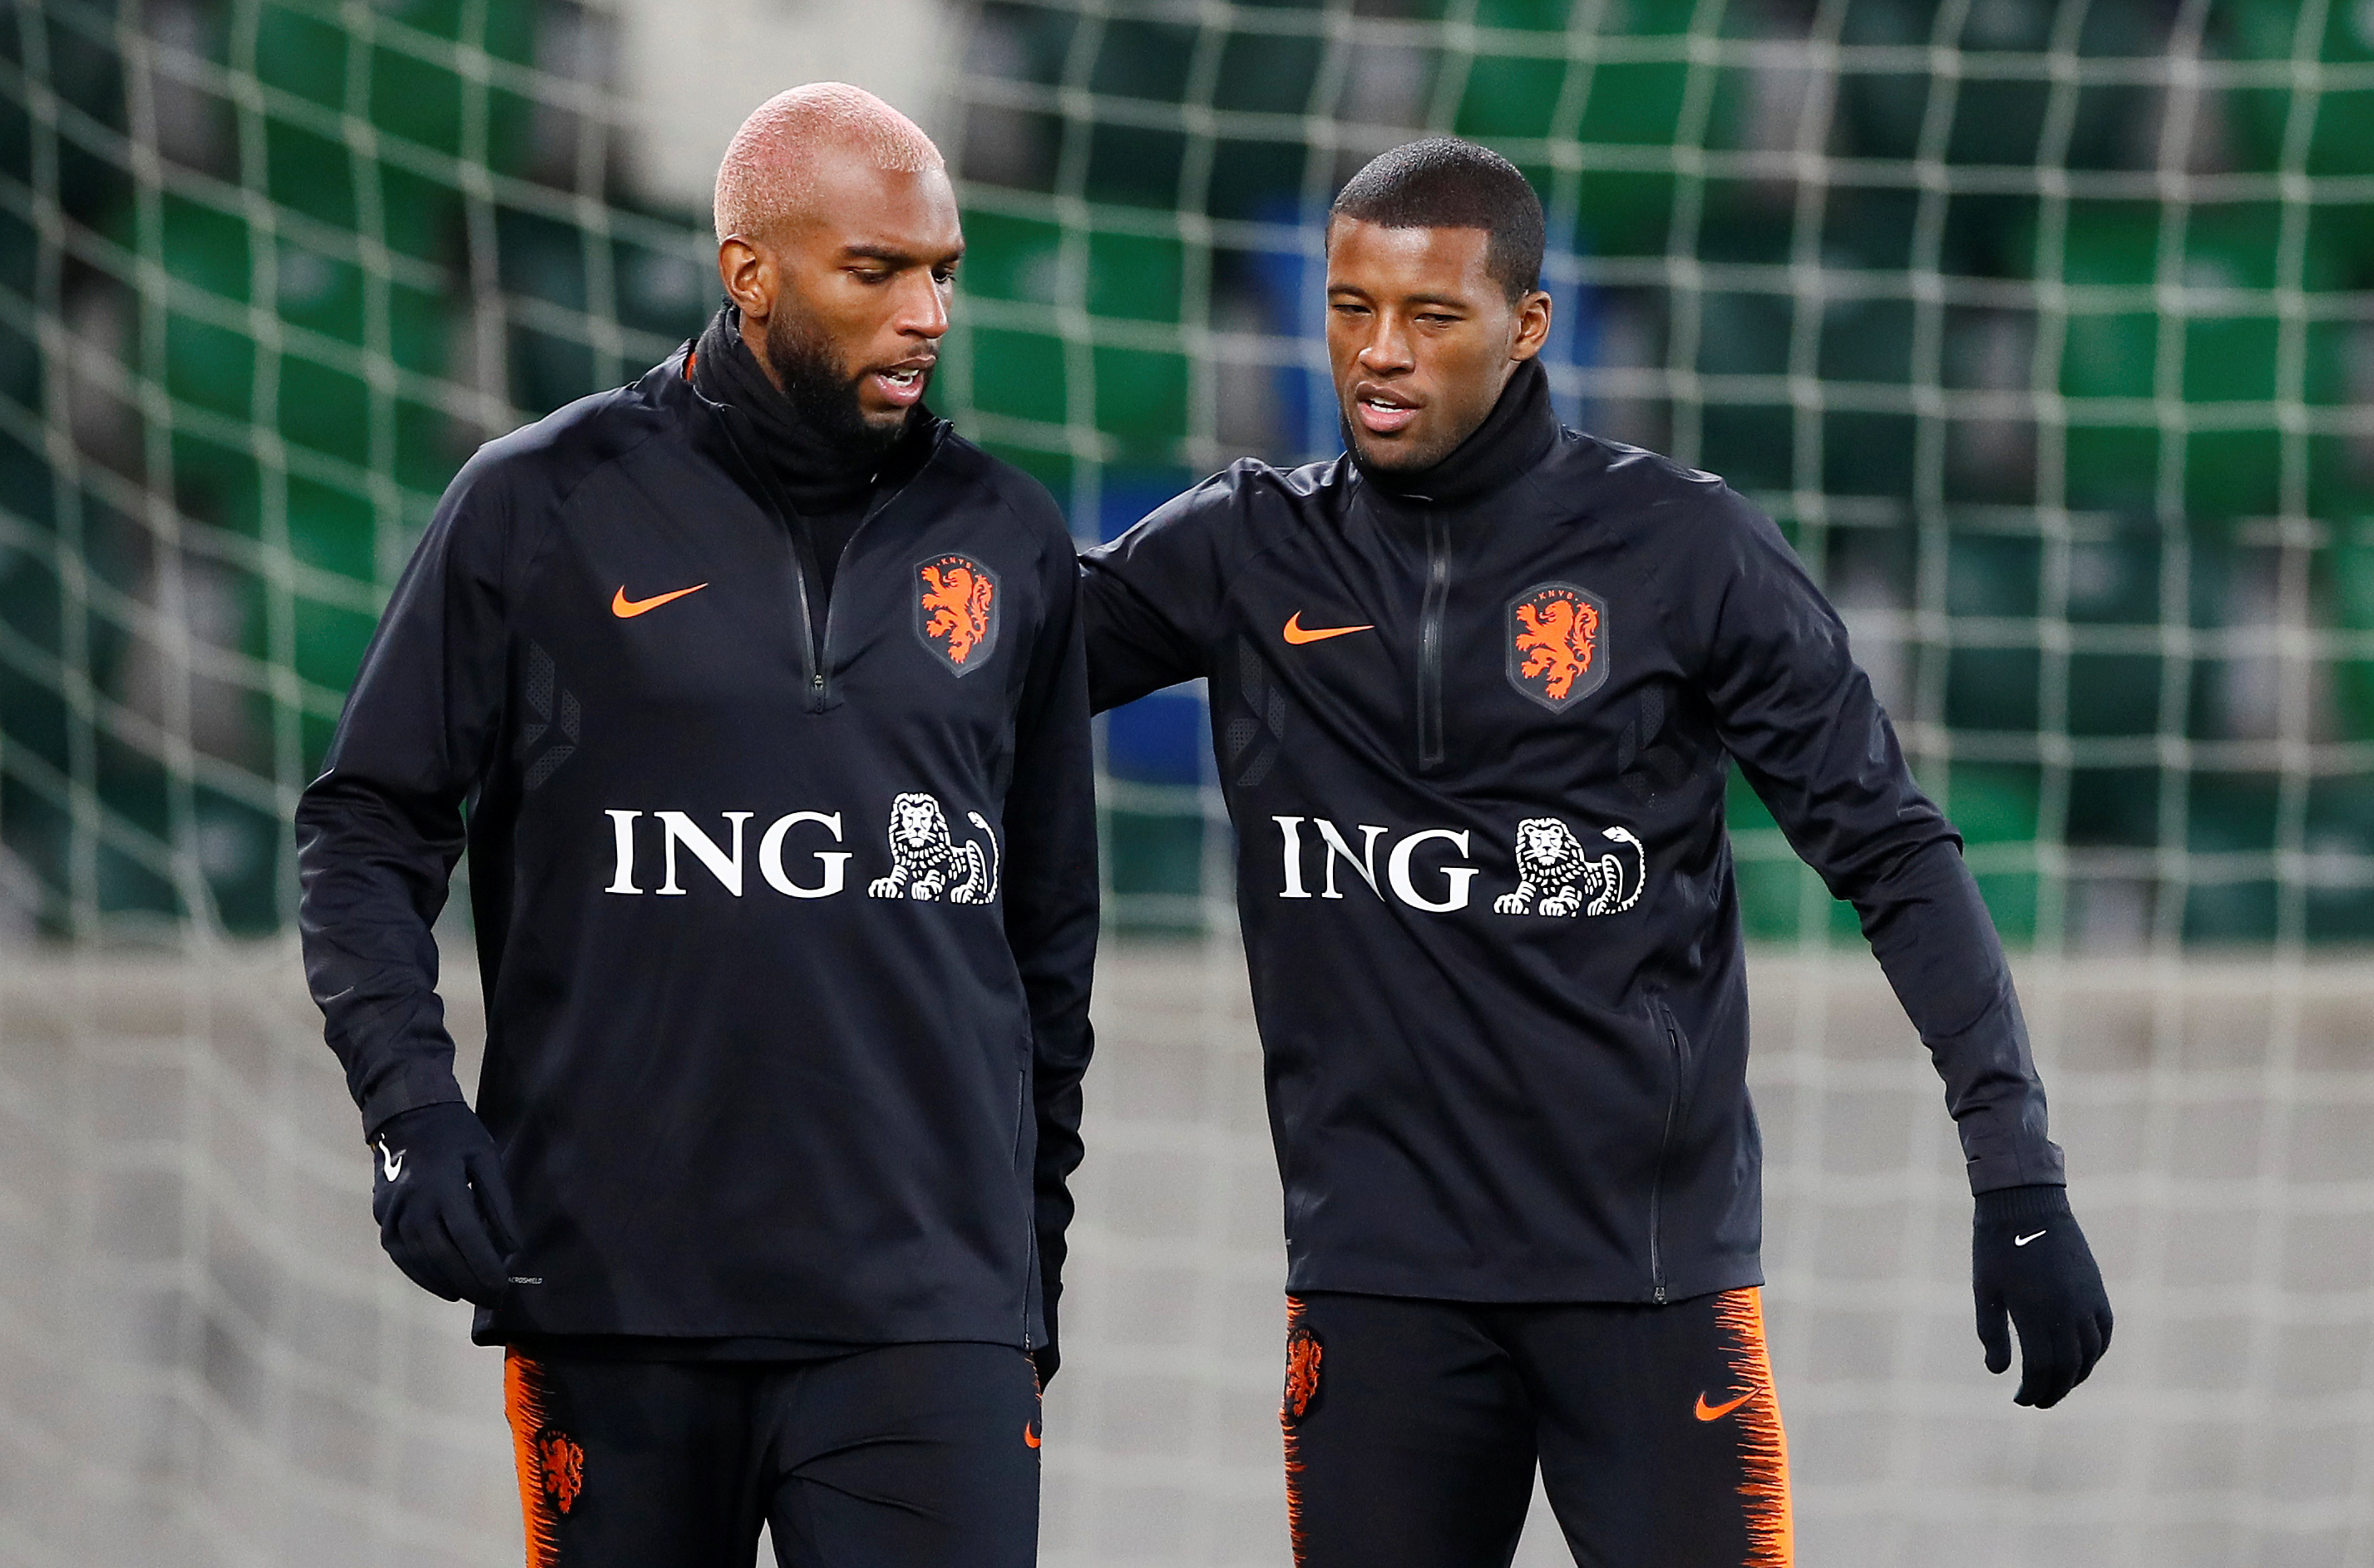 Liverpool's Wijnaldum should set a trend here